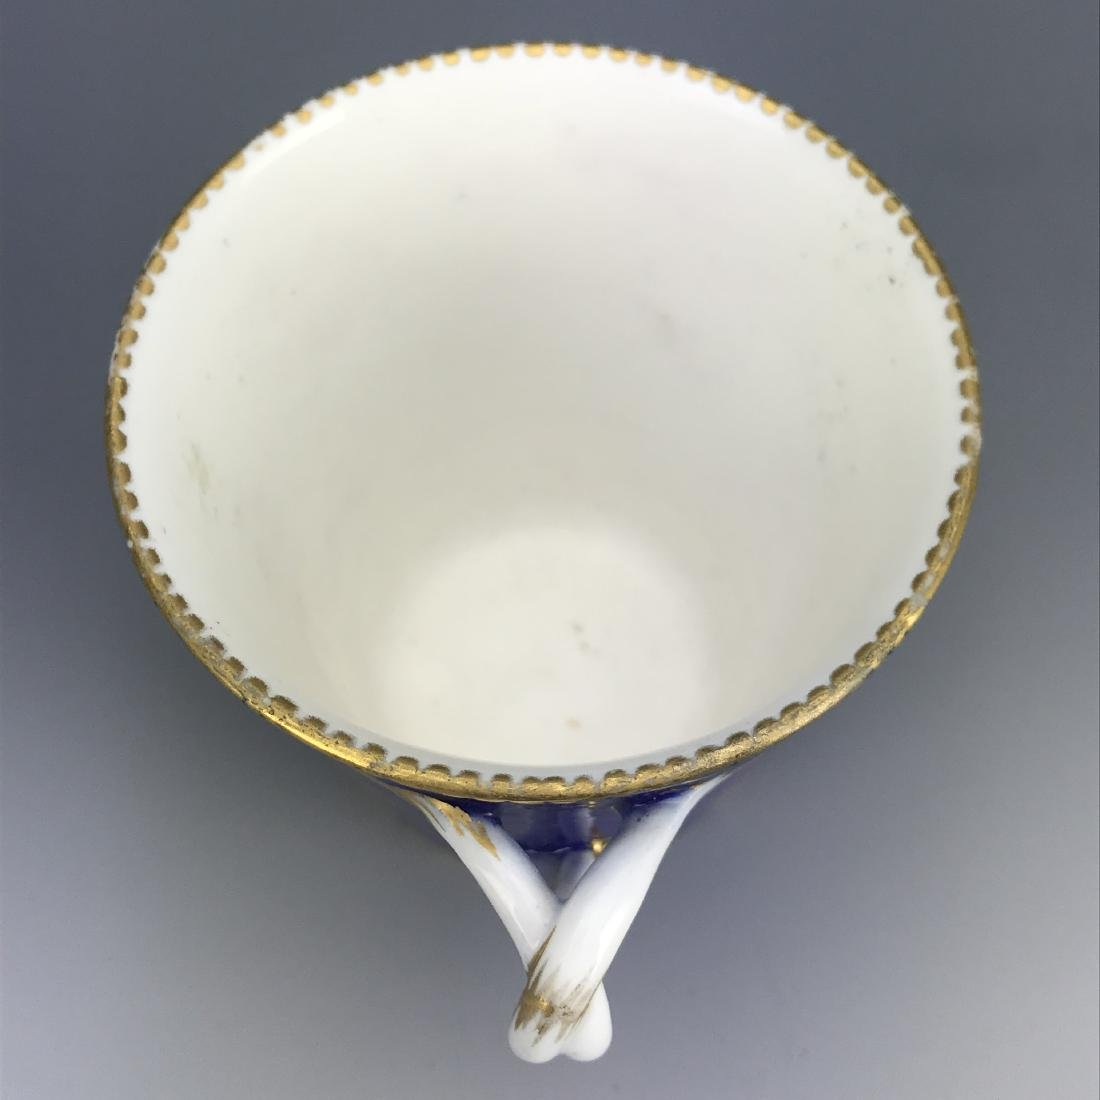 18th C. French Porcelain Sevres Cup & Saucer - 7